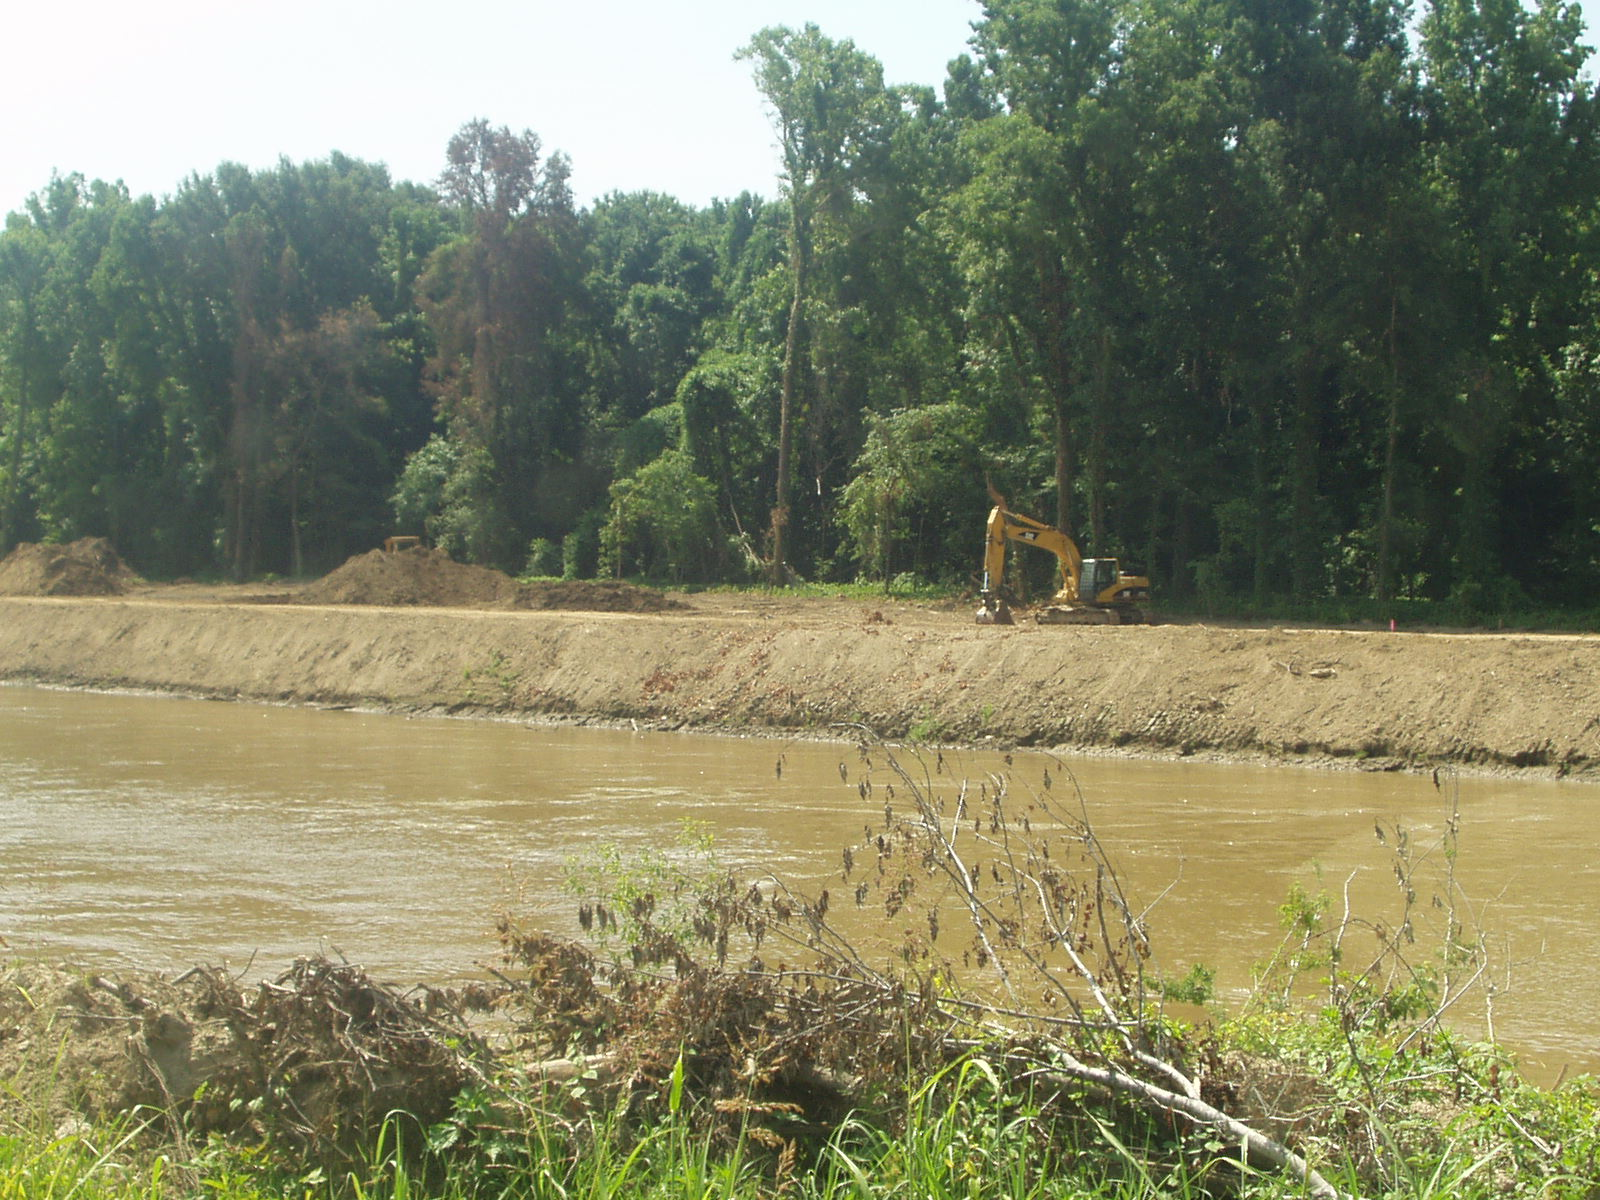 Bank work along Item 6 on the Yazoo River